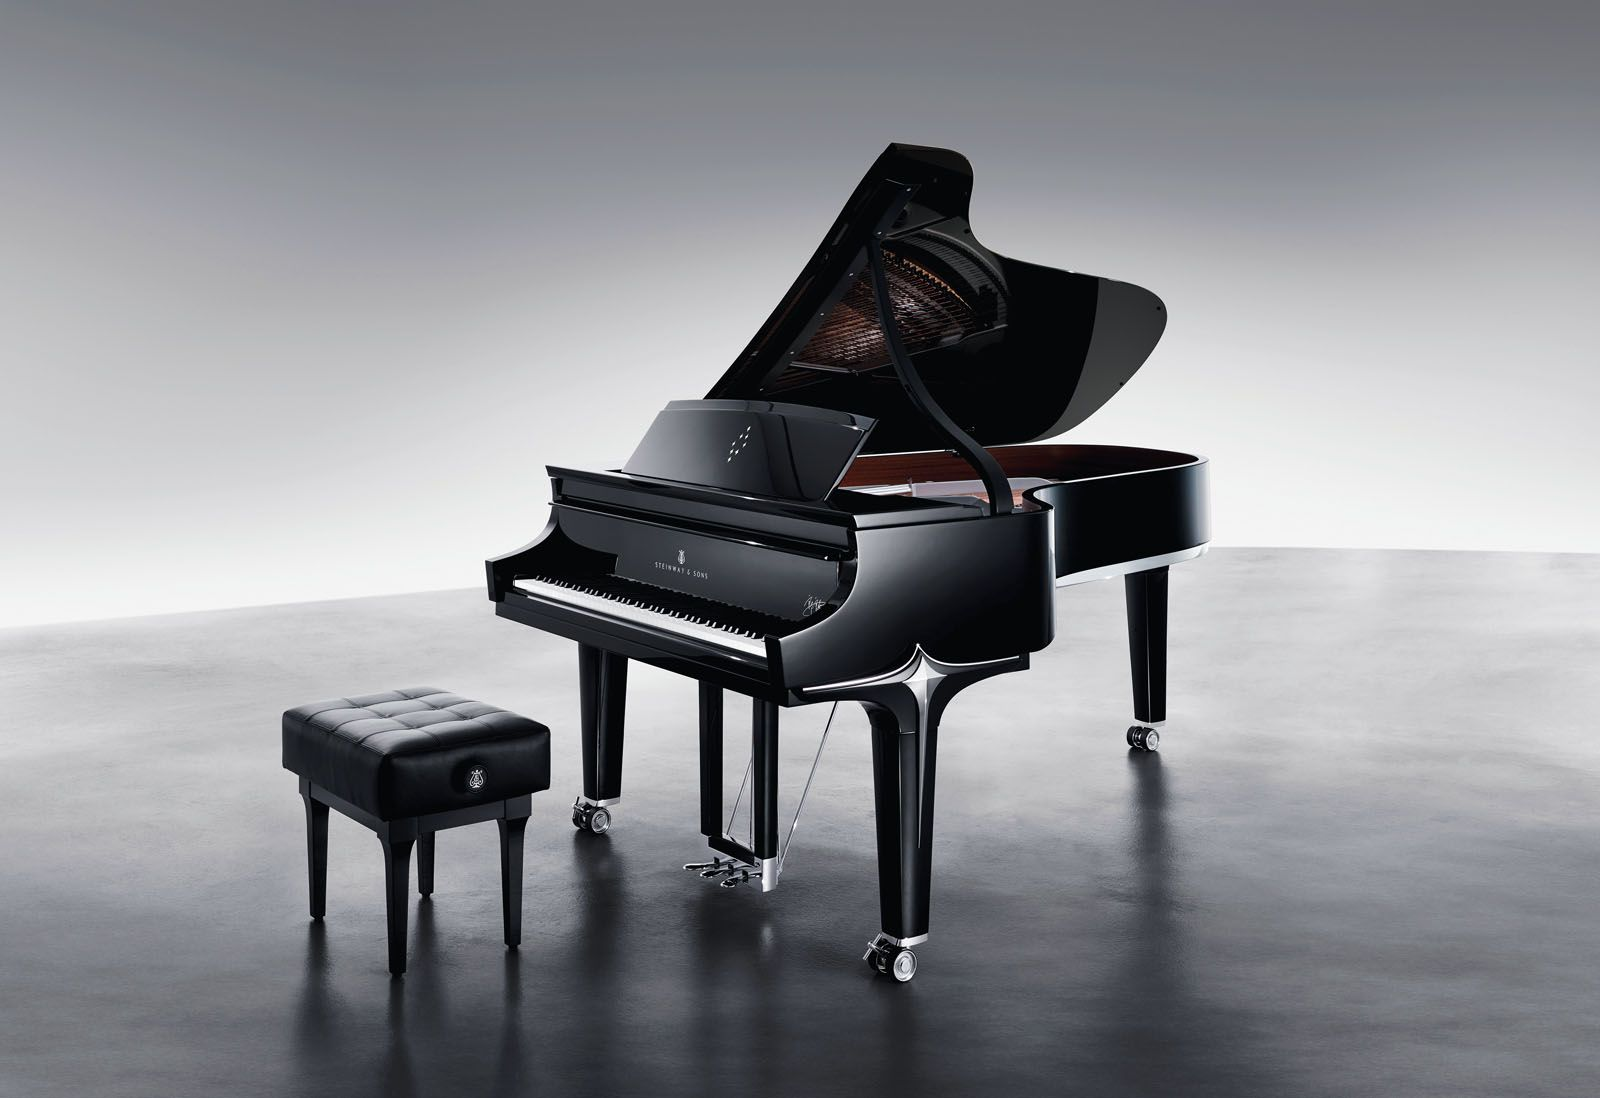 This Steinway & Sons Piano Was Co-Designed By Lang Lang And Dakota Jackson